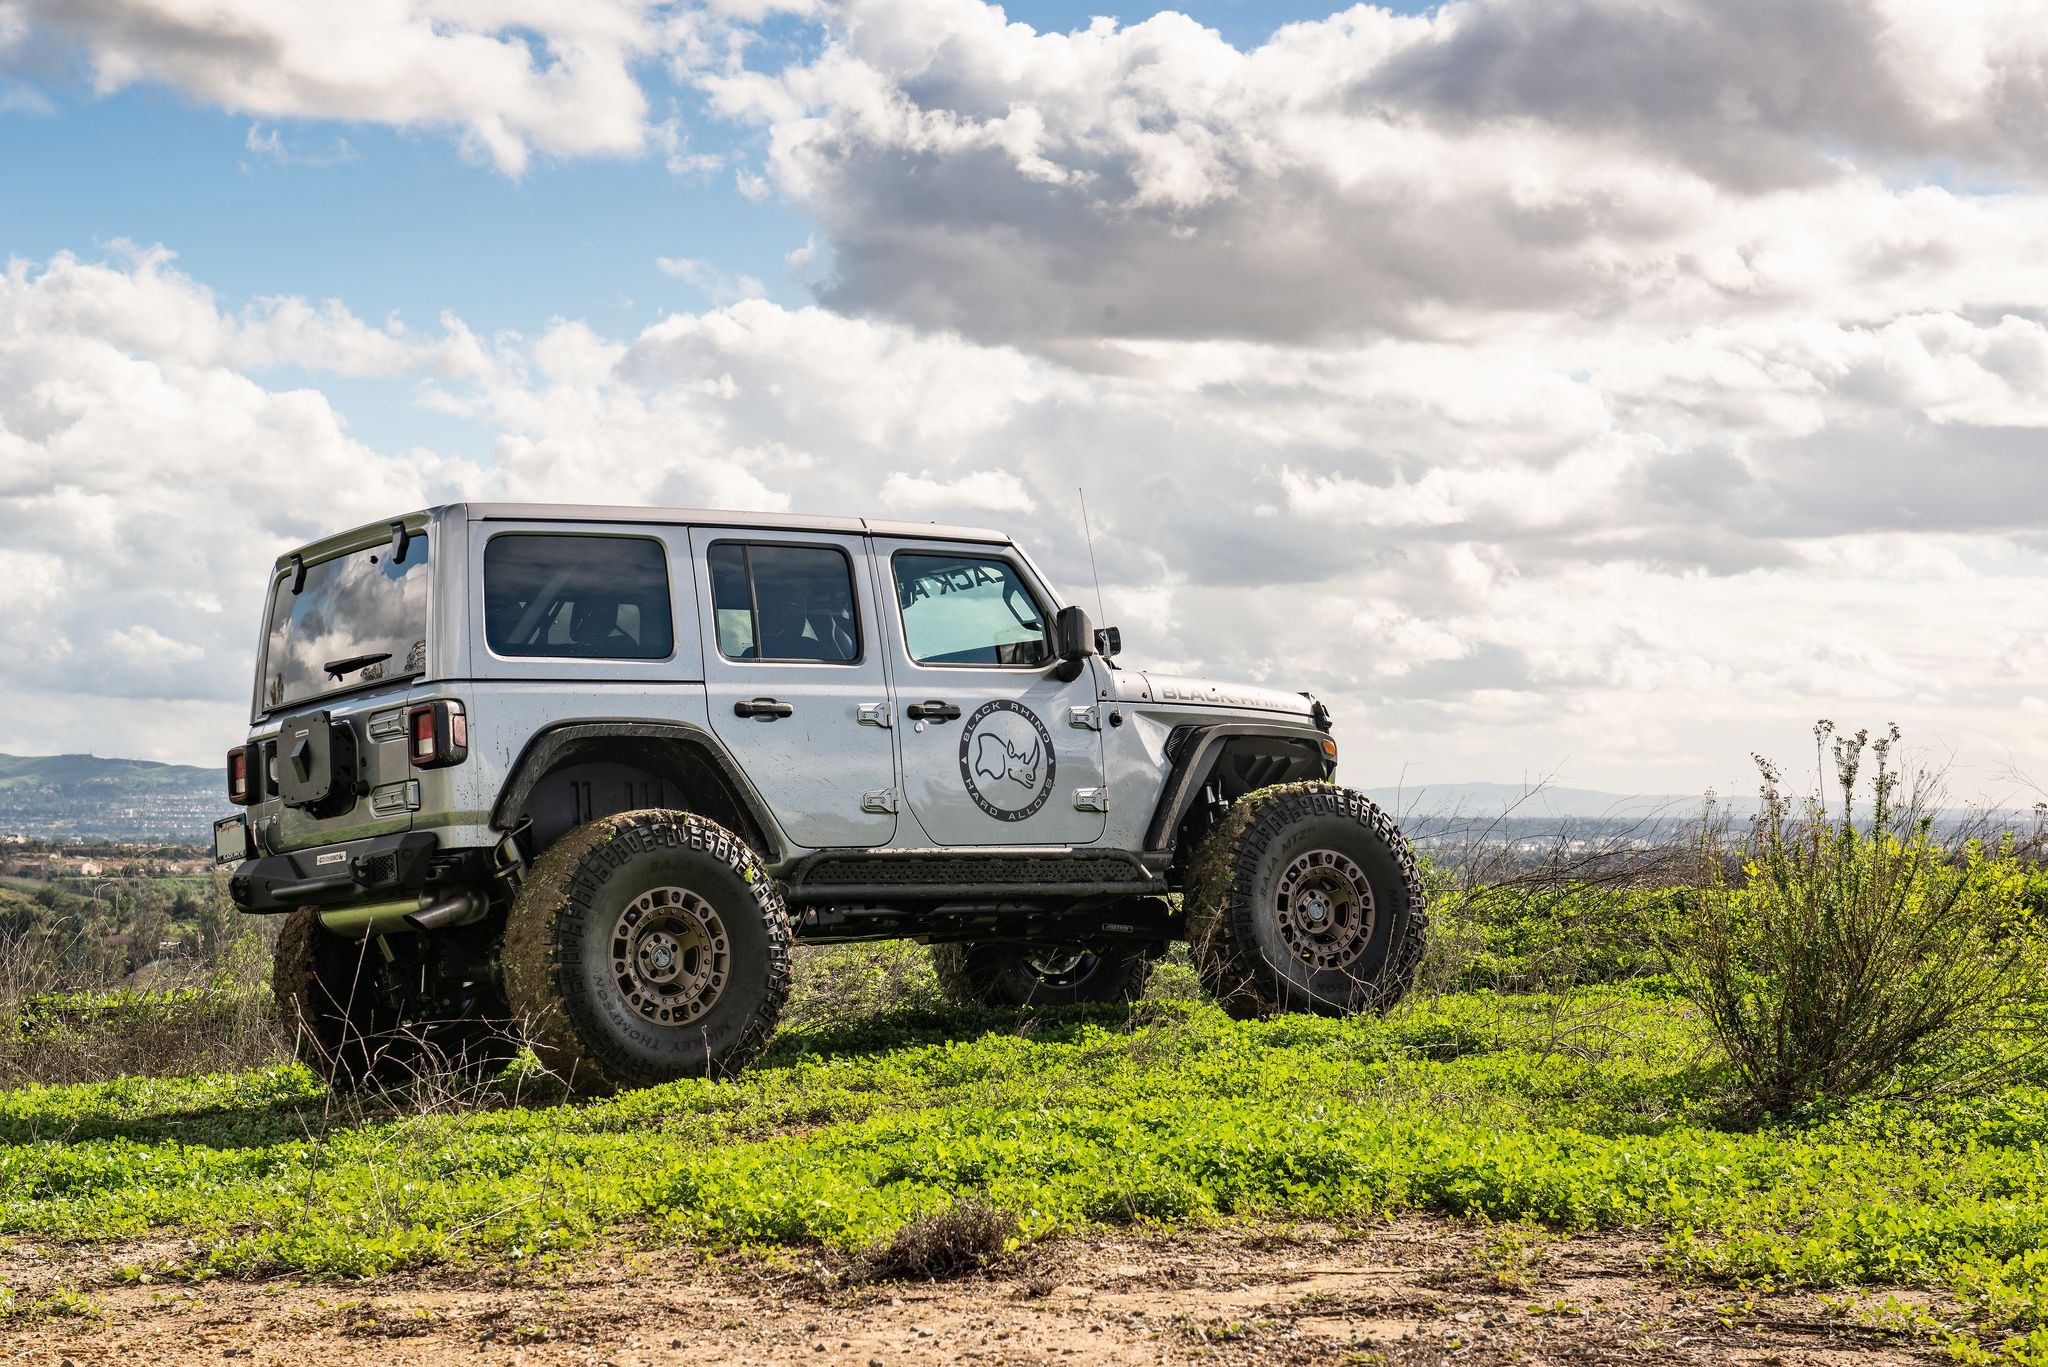 Jeep Wrangler JLU Rubicon in gray colour